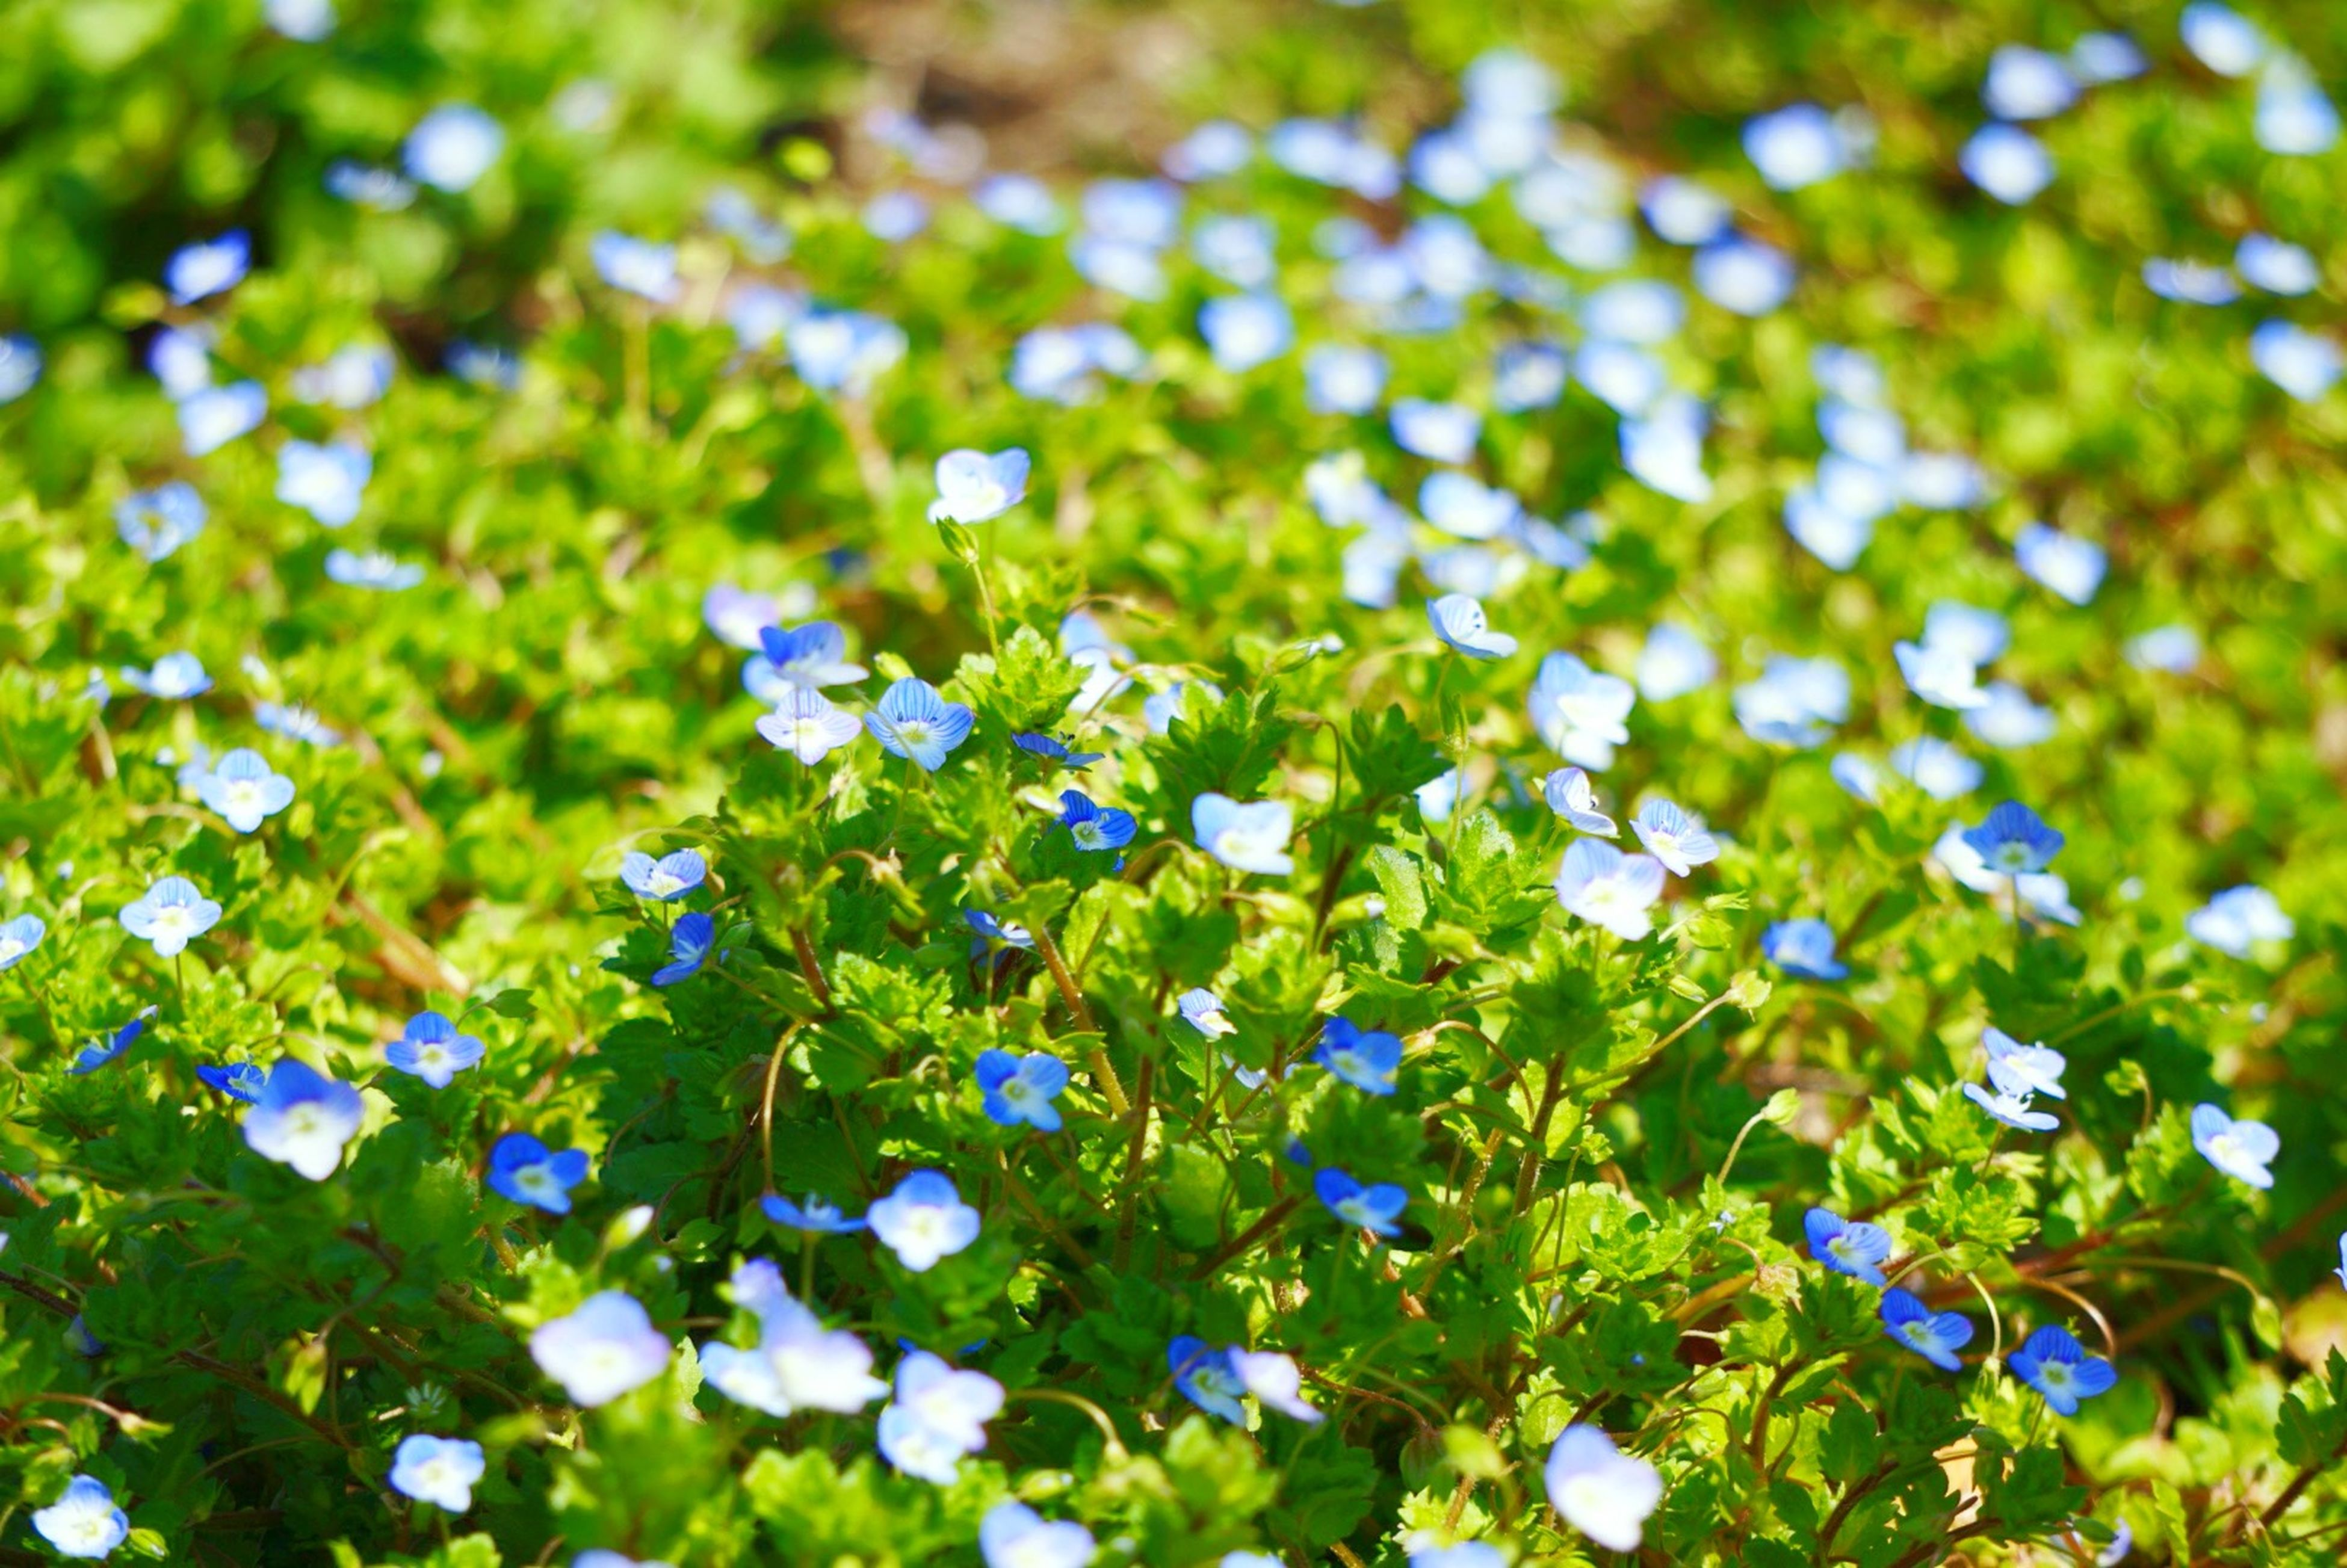 flower, growth, fragility, blue, freshness, purple, beauty in nature, nature, plant, green color, blooming, leaf, petal, field, focus on foreground, close-up, day, in bloom, white color, park - man made space